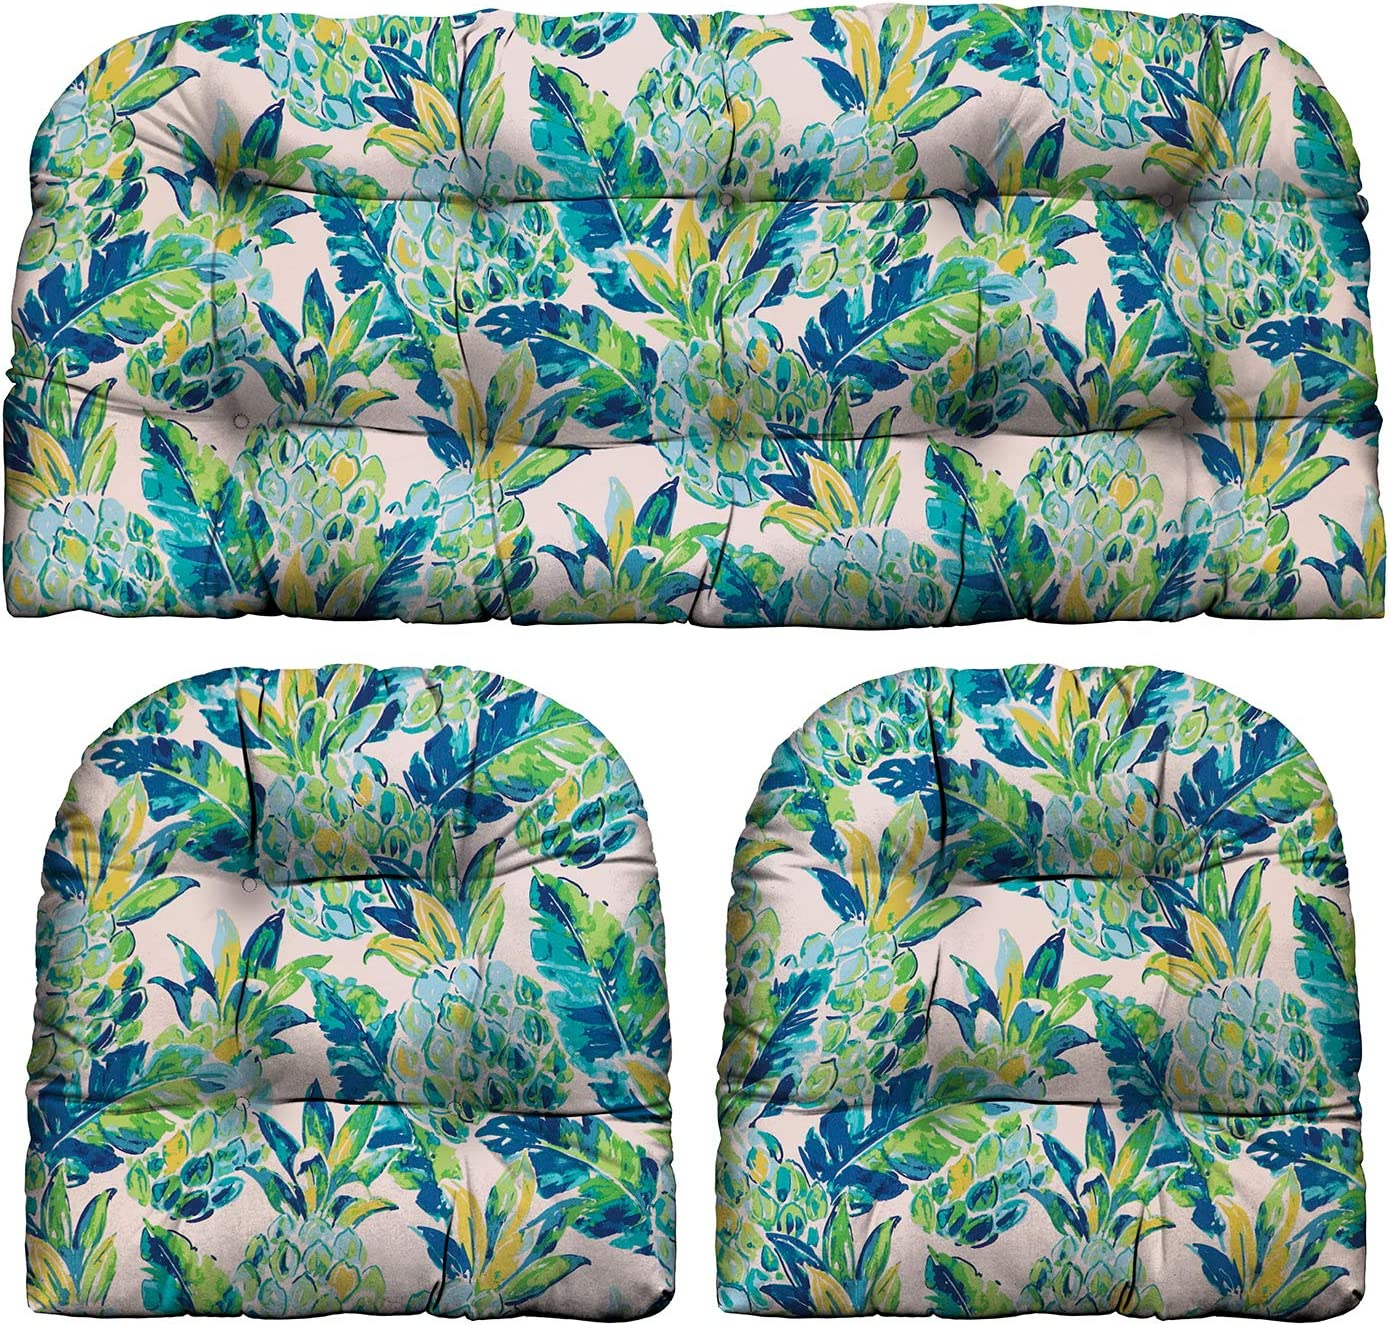 RSH Décor Indoor Outdoor Scroll & Medallion Prints - 3 Pc Tufted Wicker Cushion Set 1 Loveseat & 2 U-Shape-Choose Color & Size (Vida Opal Yellow Green Blue Lily Pineapple, LS 41